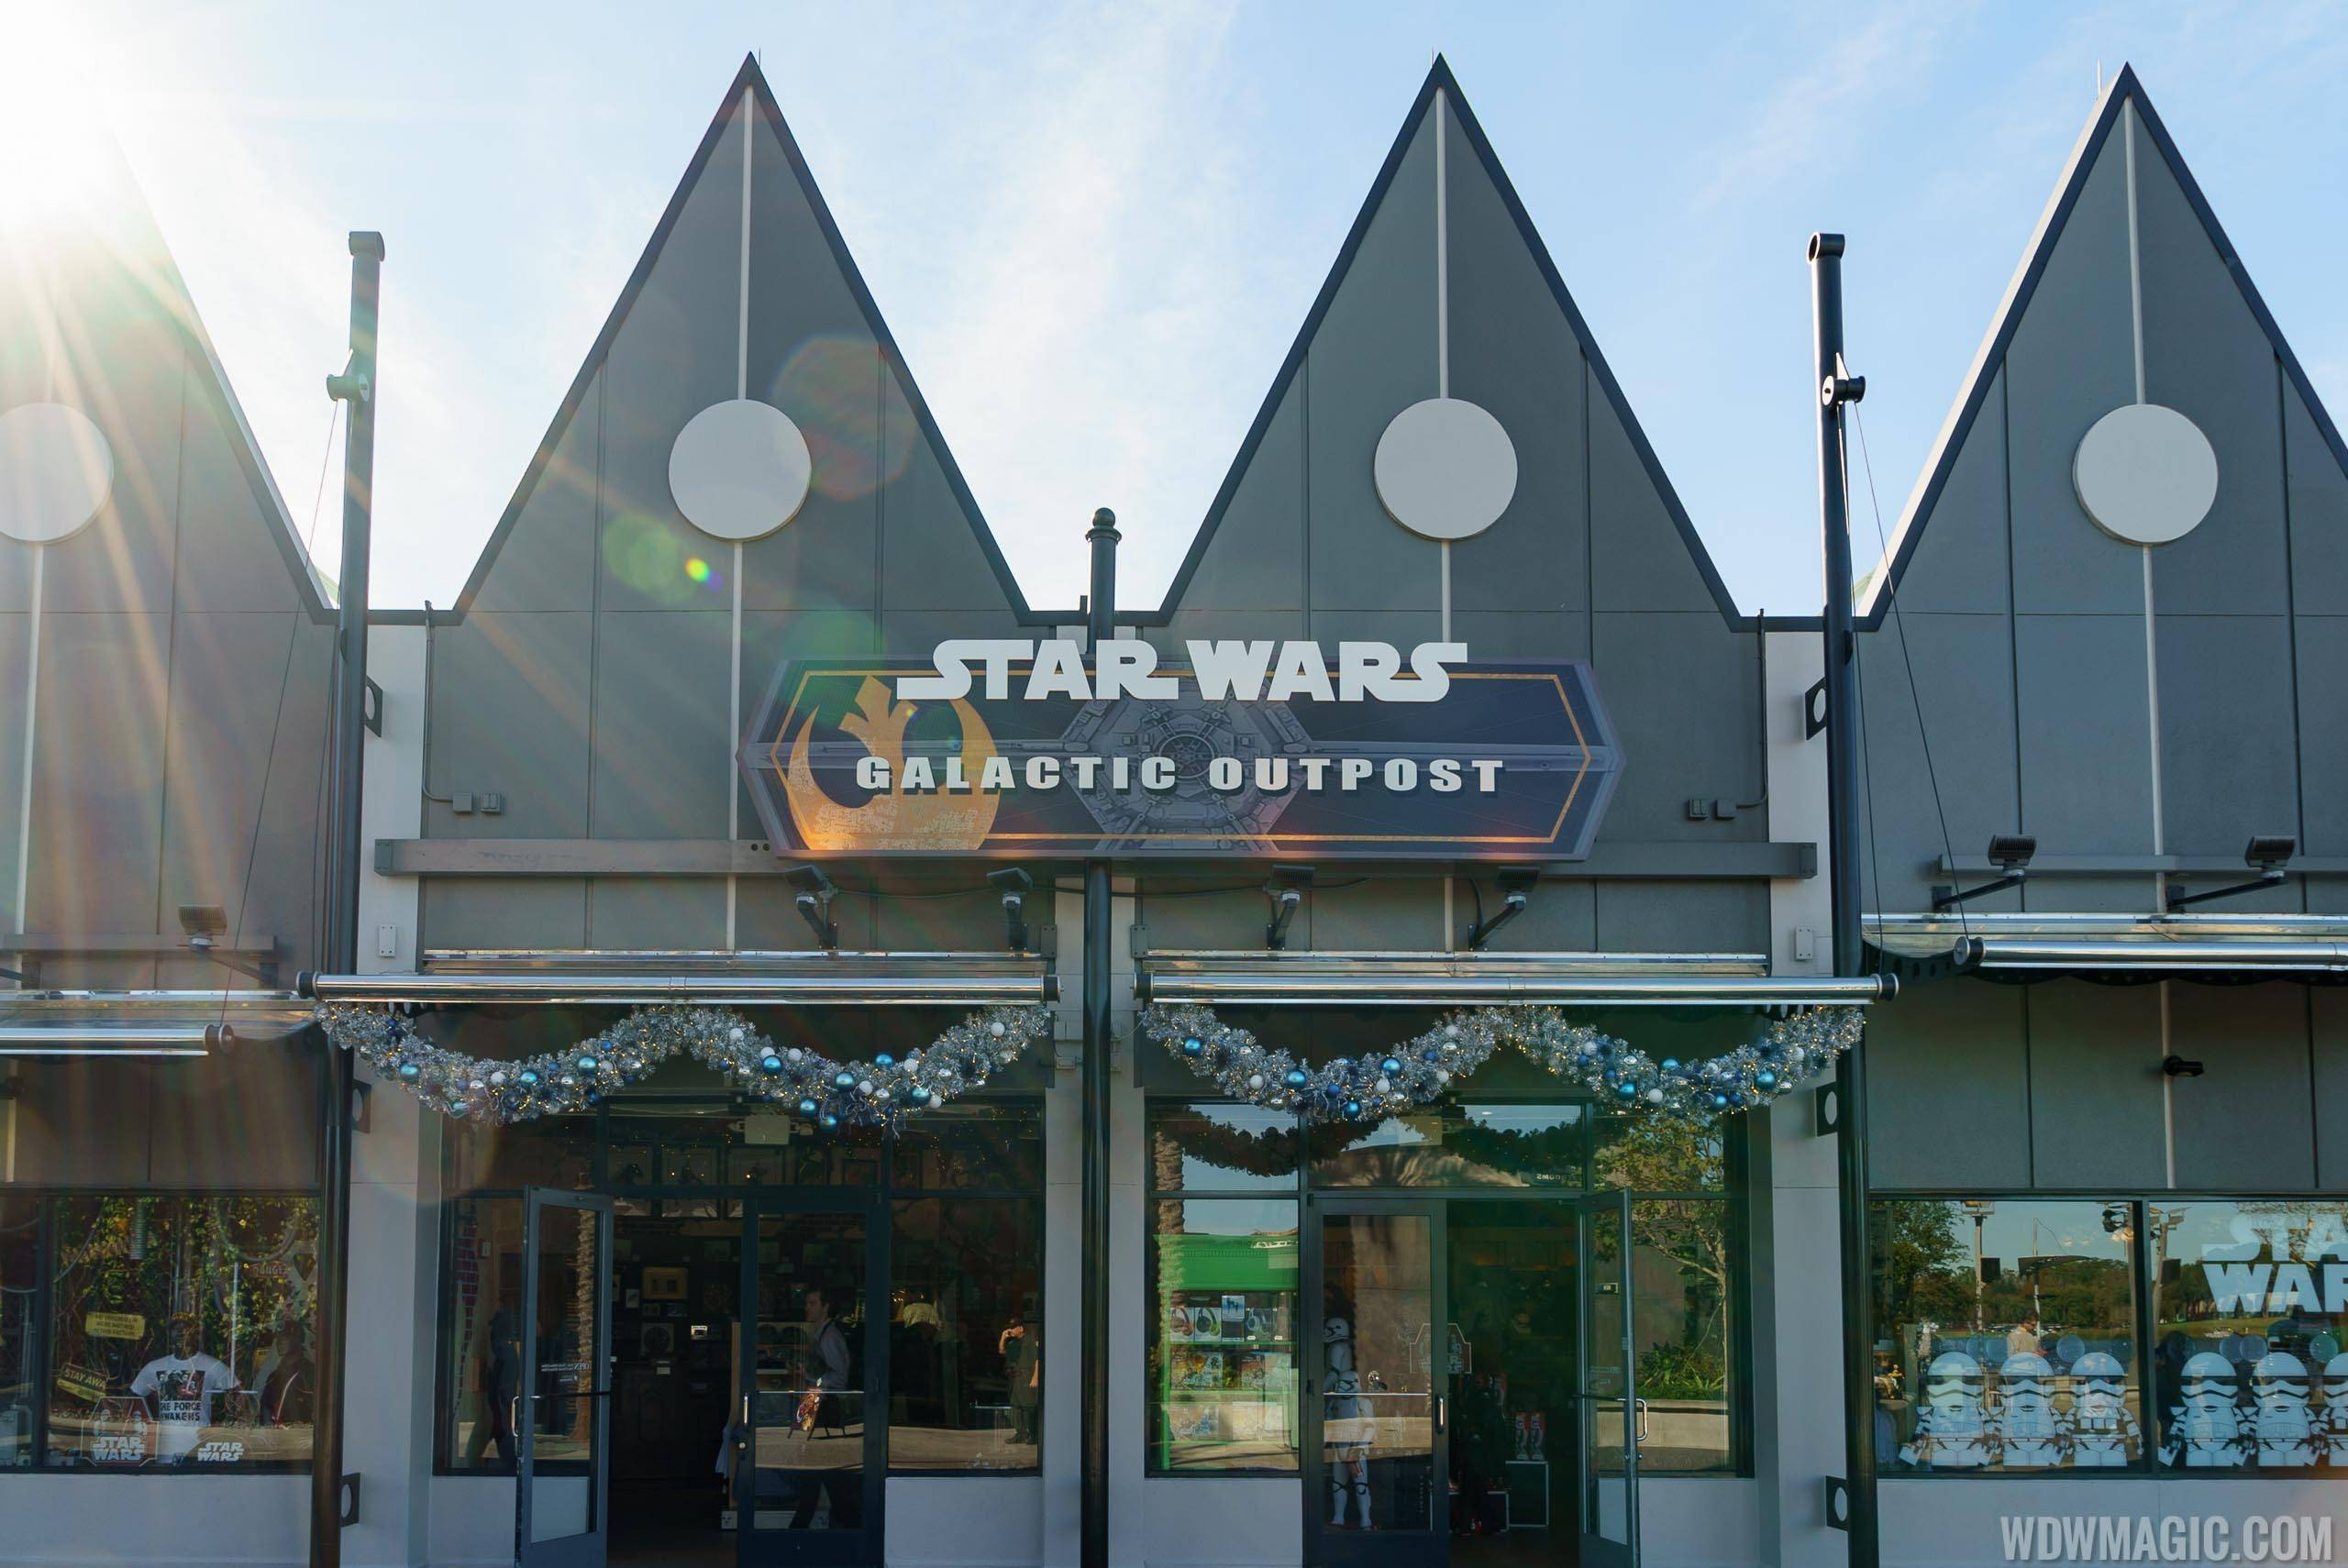 Star Wars Galactic Outpost overview